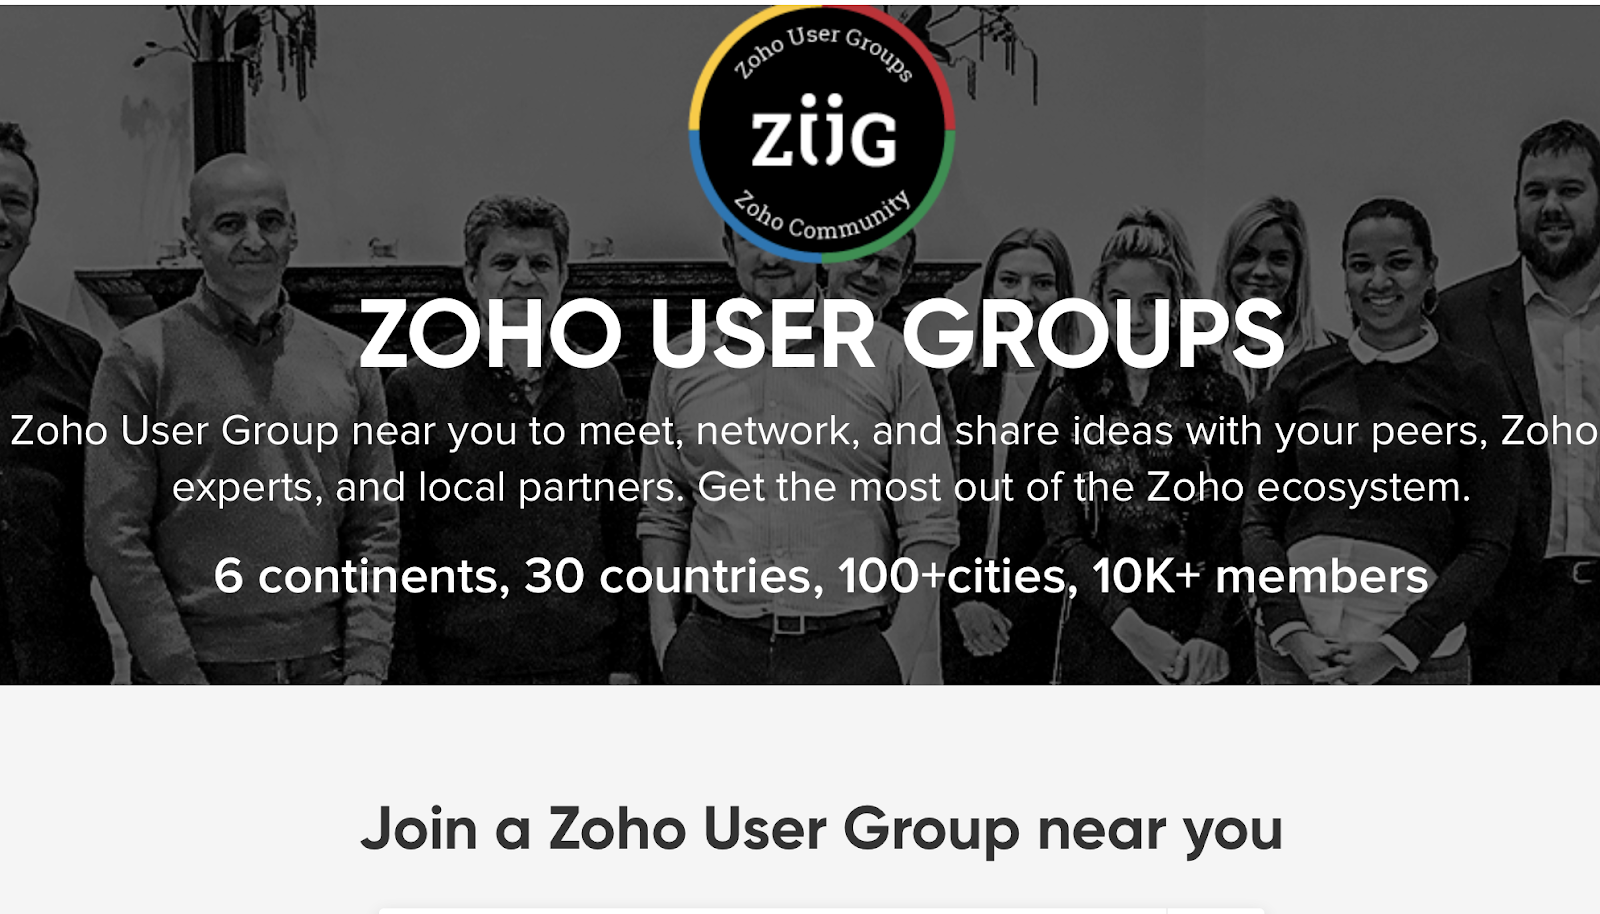 Zoho User Groups (ZUG) - Find one near you